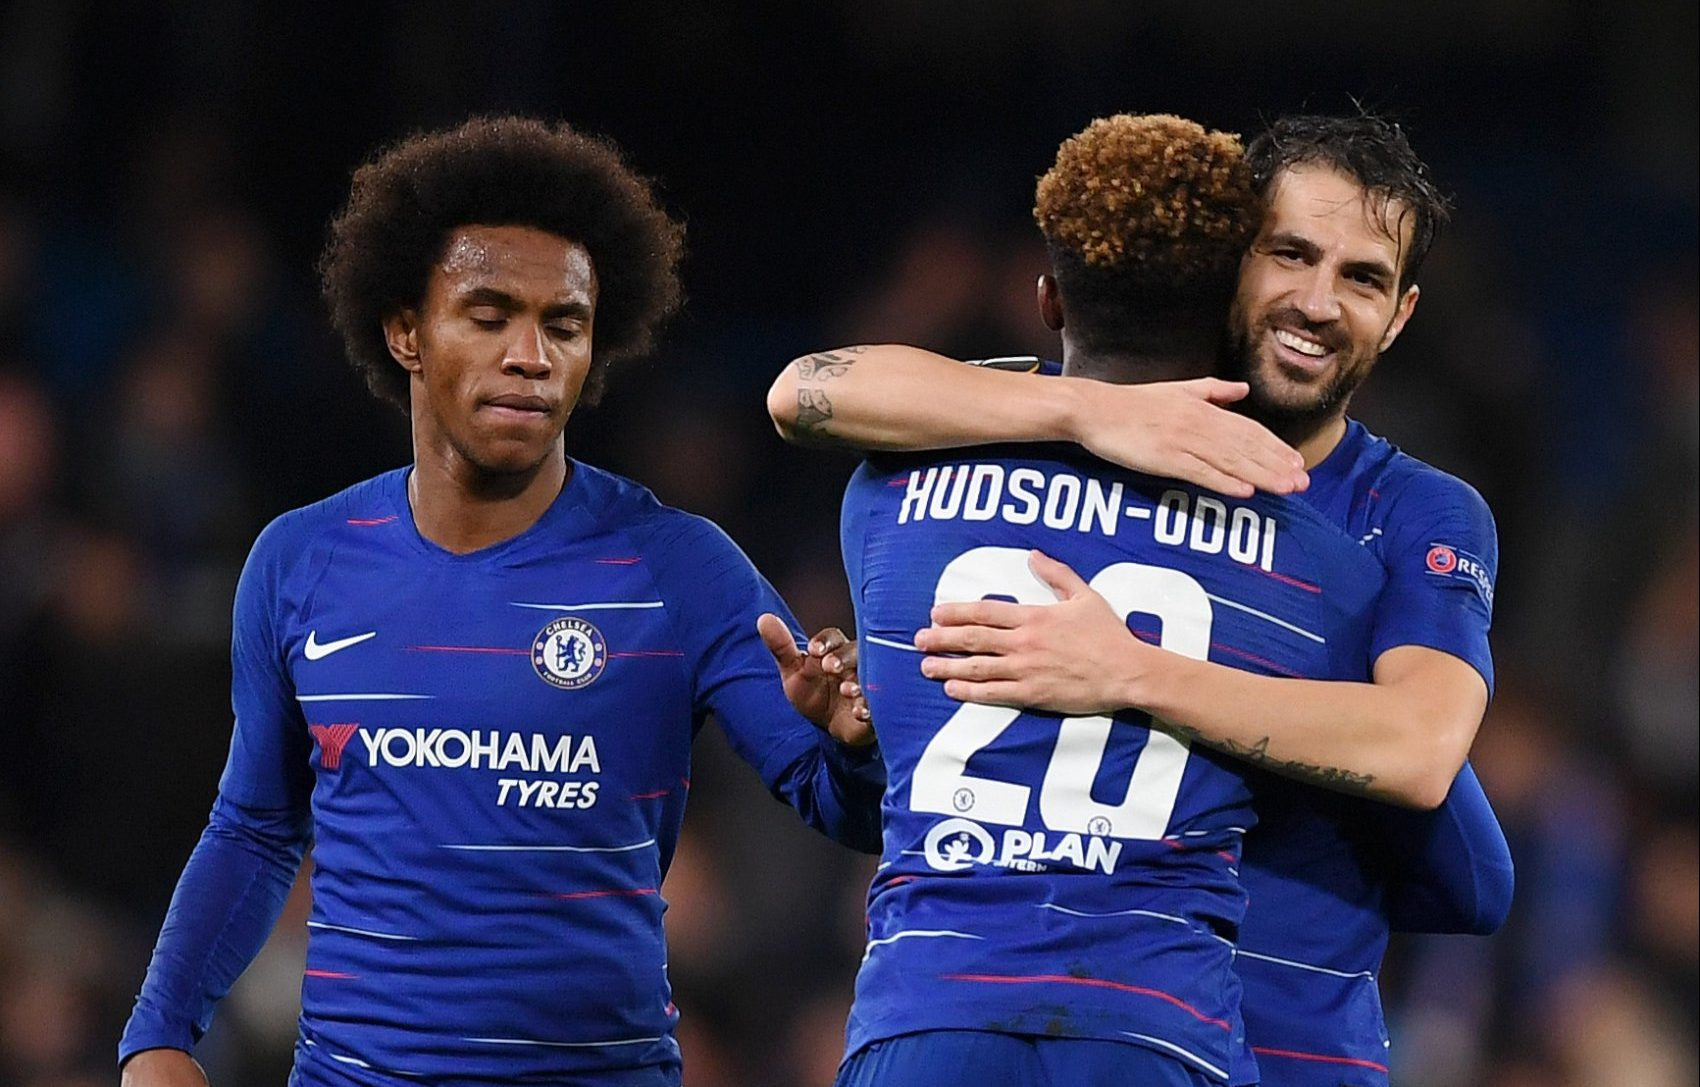 LONDON, ENGLAND - NOVEMBER 29: Callum Hudson-Odoi of Chelsea embraces Cesc Fabregas of Chelsea during the UEFA Europa League Group L match between Chelsea and PAOK at Stamford Bridge on November 29, 2018 in London, United Kingdom. (Photo by Darren Walsh/Chelsea FC via Getty Images)